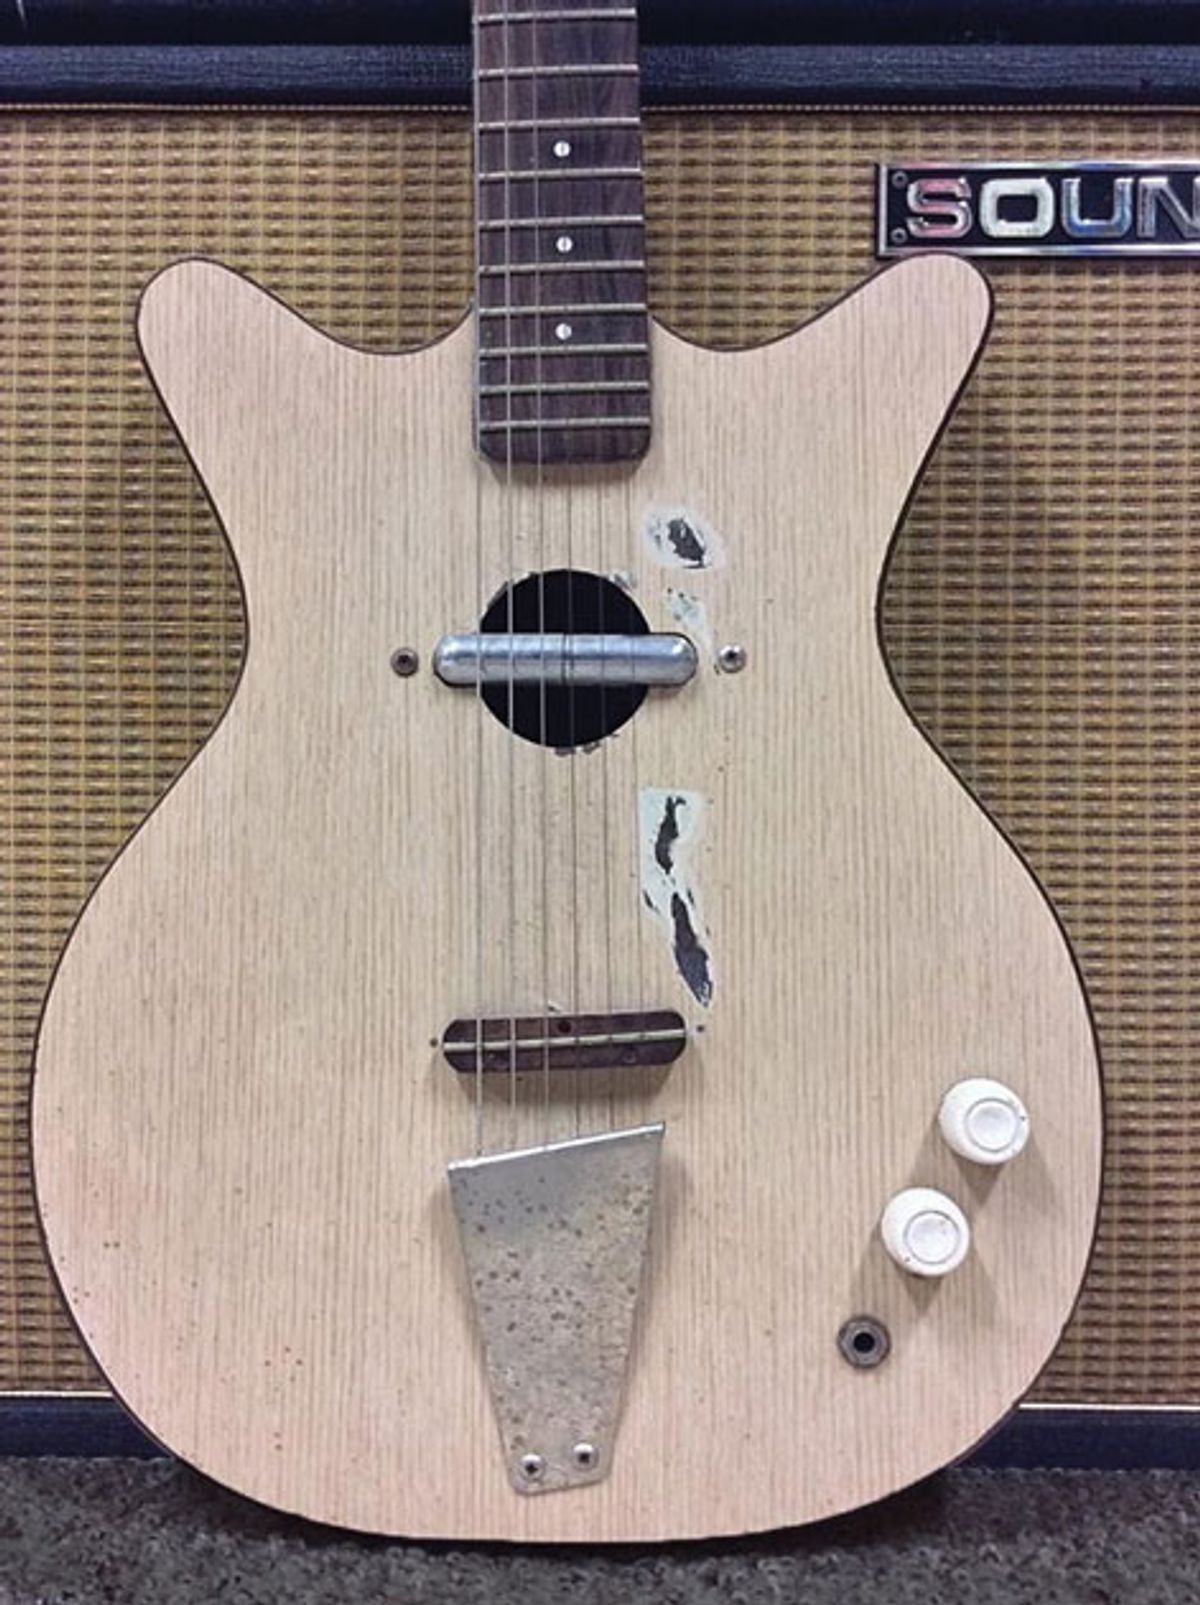 Esoterica Electrica: Pawnshop Plywood Chic Comes of Age